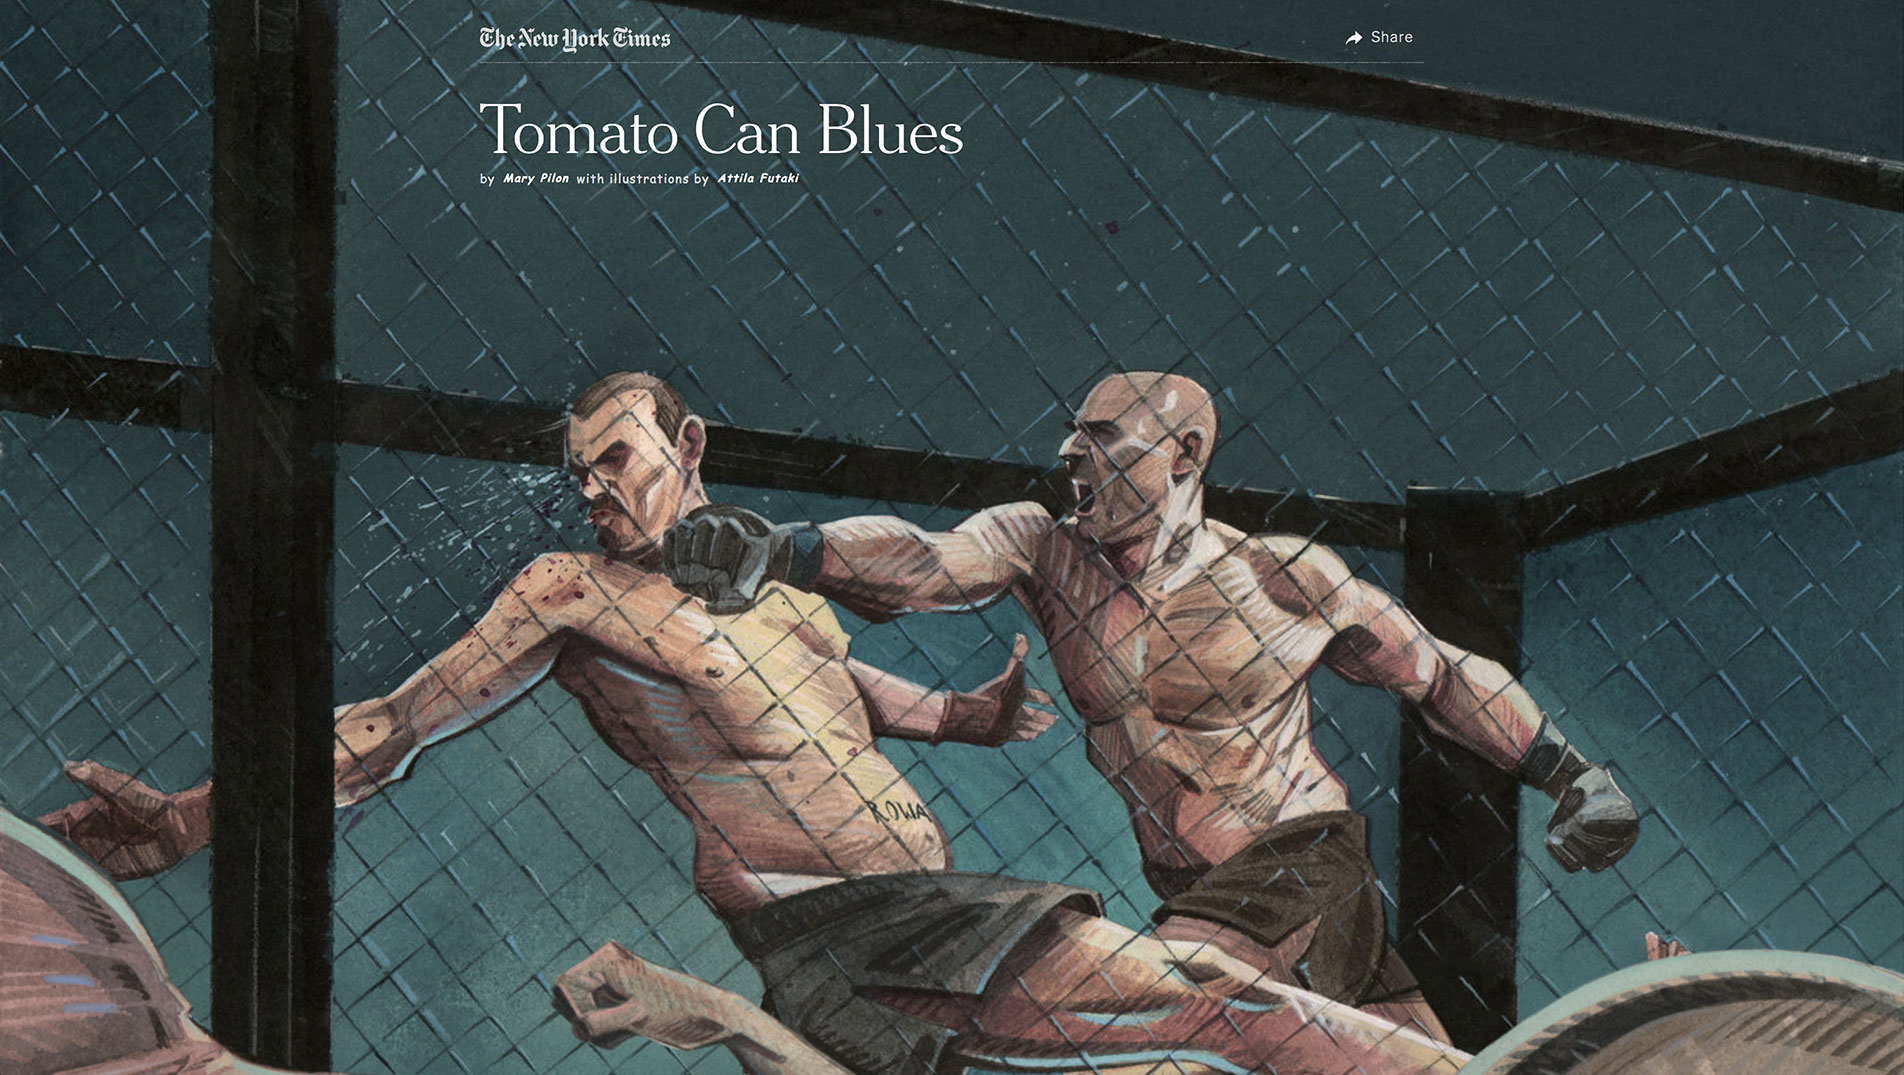 Tomato Can Blues